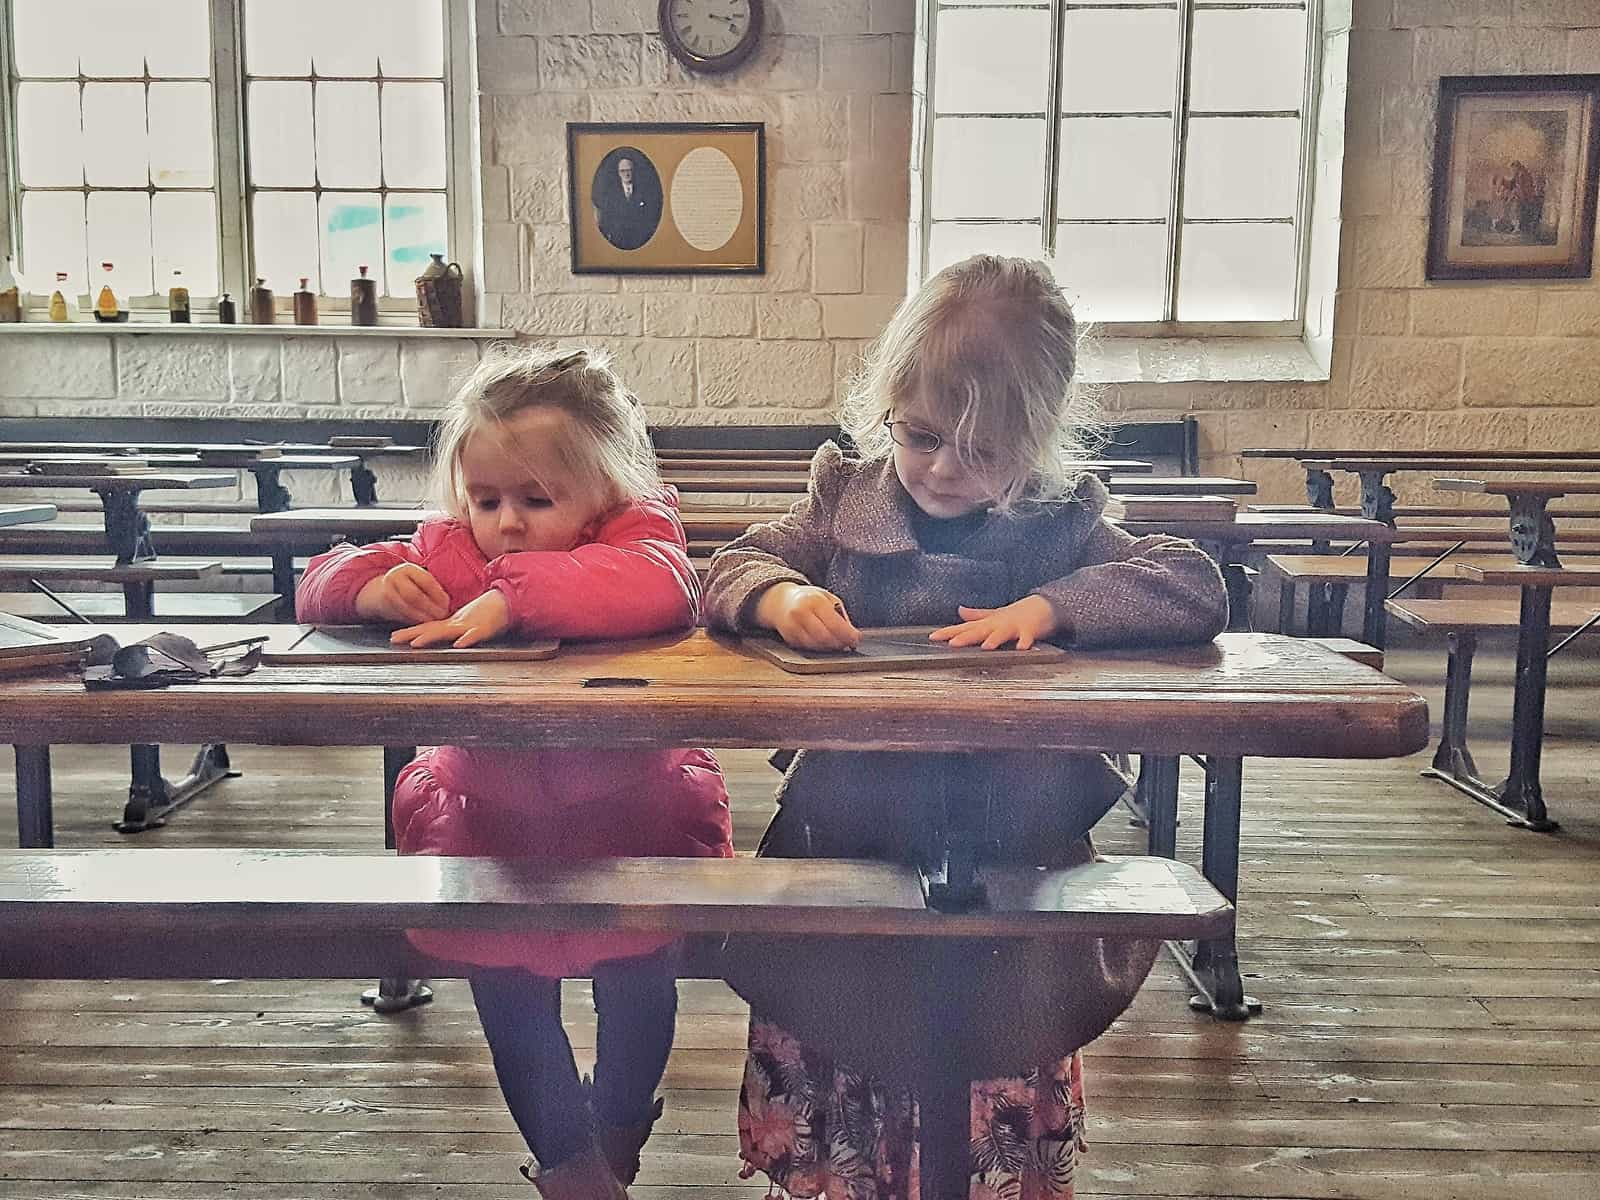 12 tips for a brilliant day out at the Black Country Living Museum near Dudley in the West Midlands. This is a living history museum that is perfect for visitors of all ages from small children to adults. It is an excellent, full day out with both food outlets and picnic areas available. Includes the Dudley Canal and Tunnel Trust.